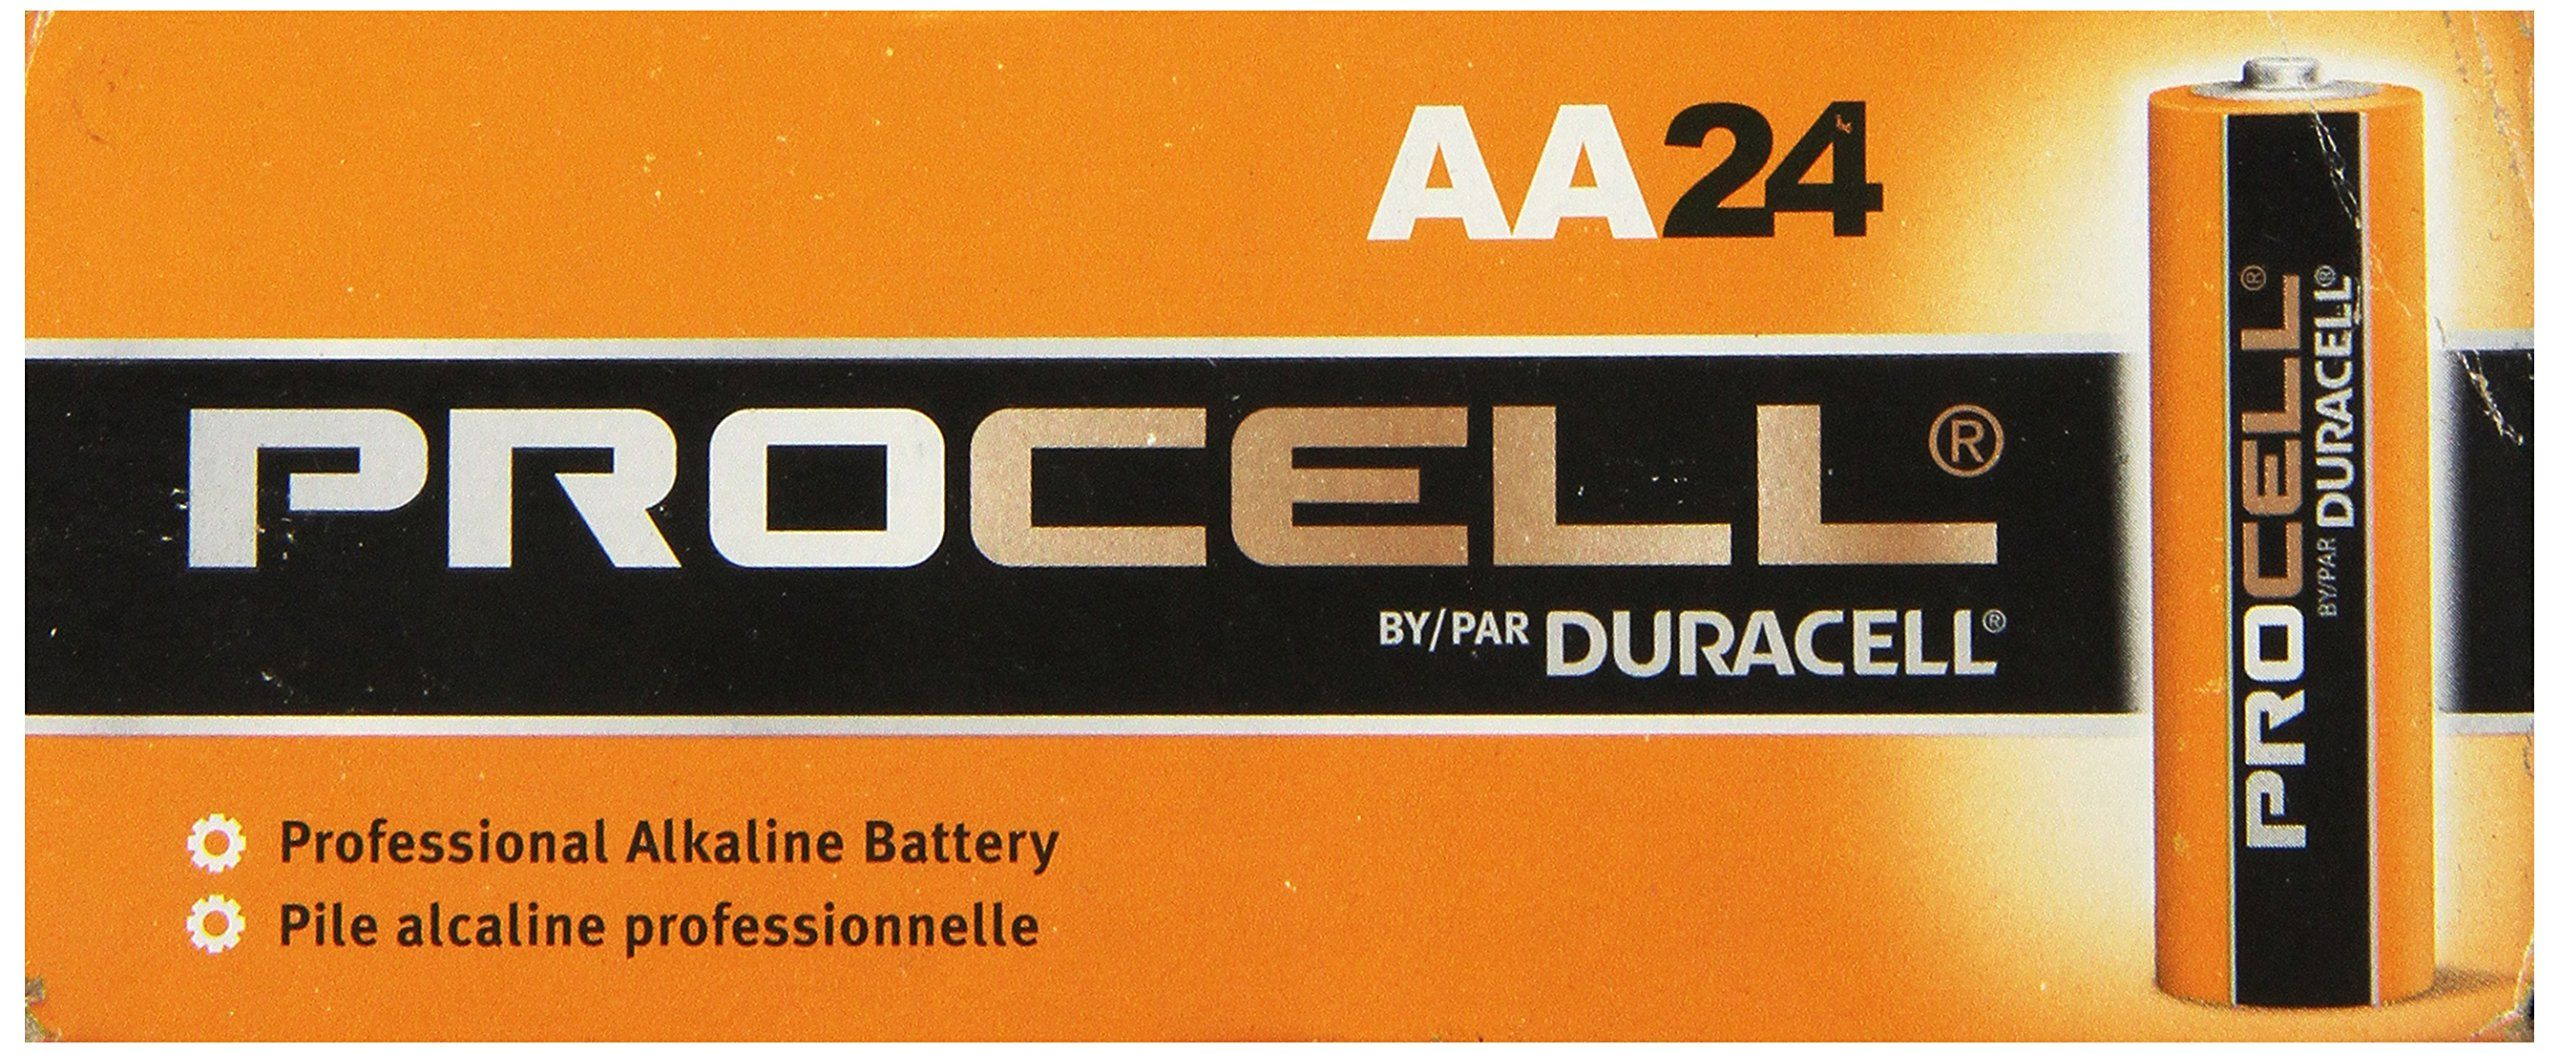 Duracell Procell Aa 24 Pack Pc1500bkd09 Want Additional Info Click On The Image It Is An Affiliate Link To Amazon Duracell Alkaline Battery Batteries